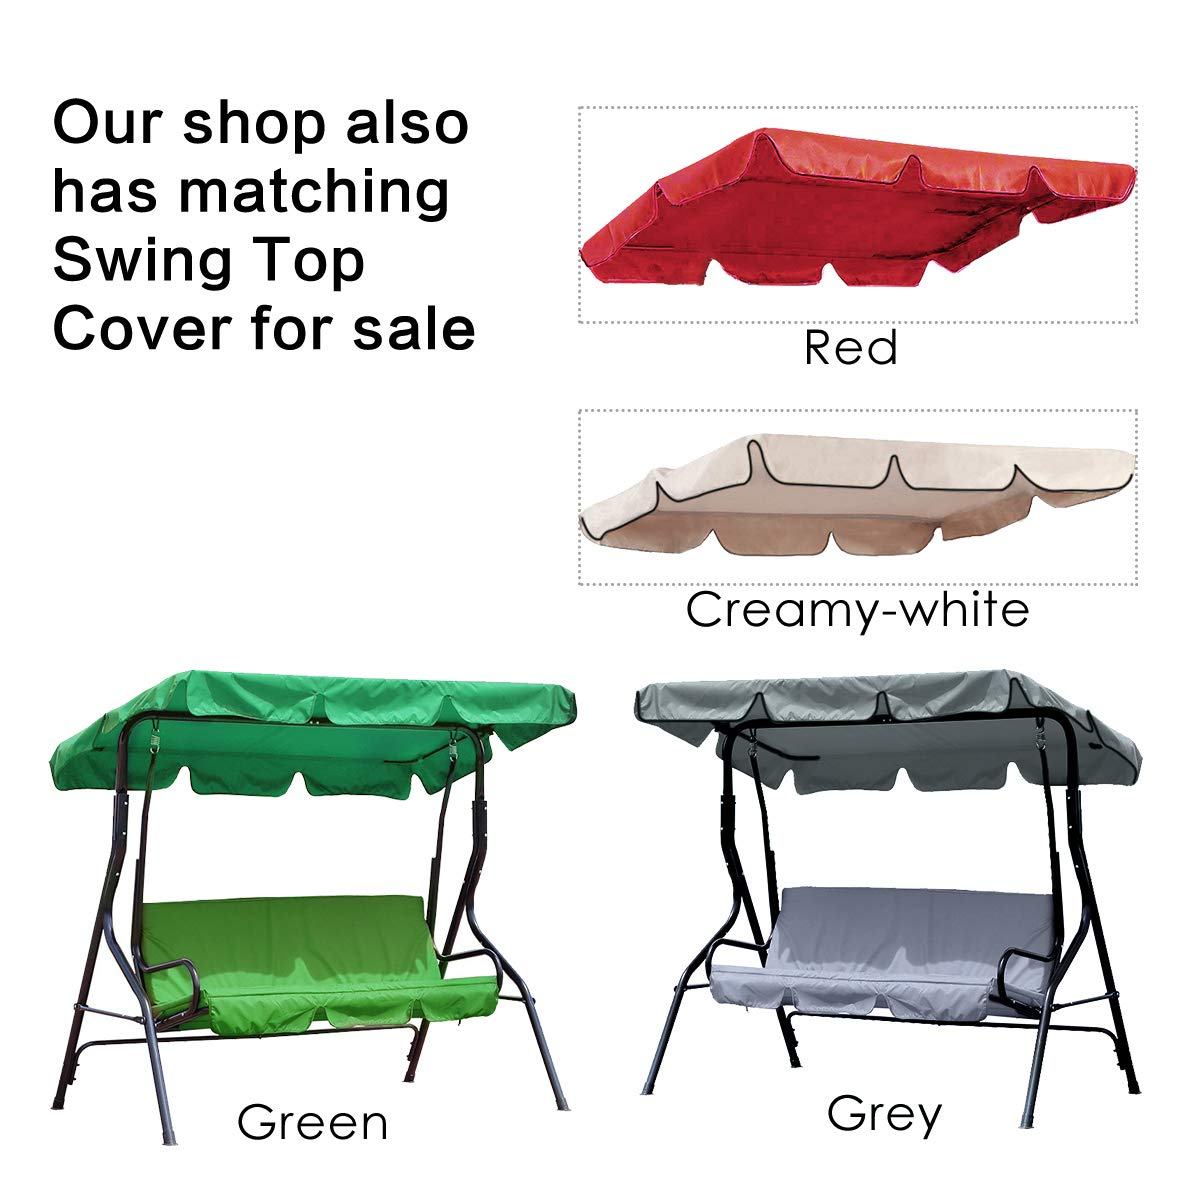 Essort Swing Canopy, 2 to 3 Seaters Waterproof Anti-UV Swing Top Cover Canopy Replacement for Outdoor Porch Patio Swing and Garden Hammock, 75'' × 52'' × 5.9'' Grey by ESSORT (Image #7)